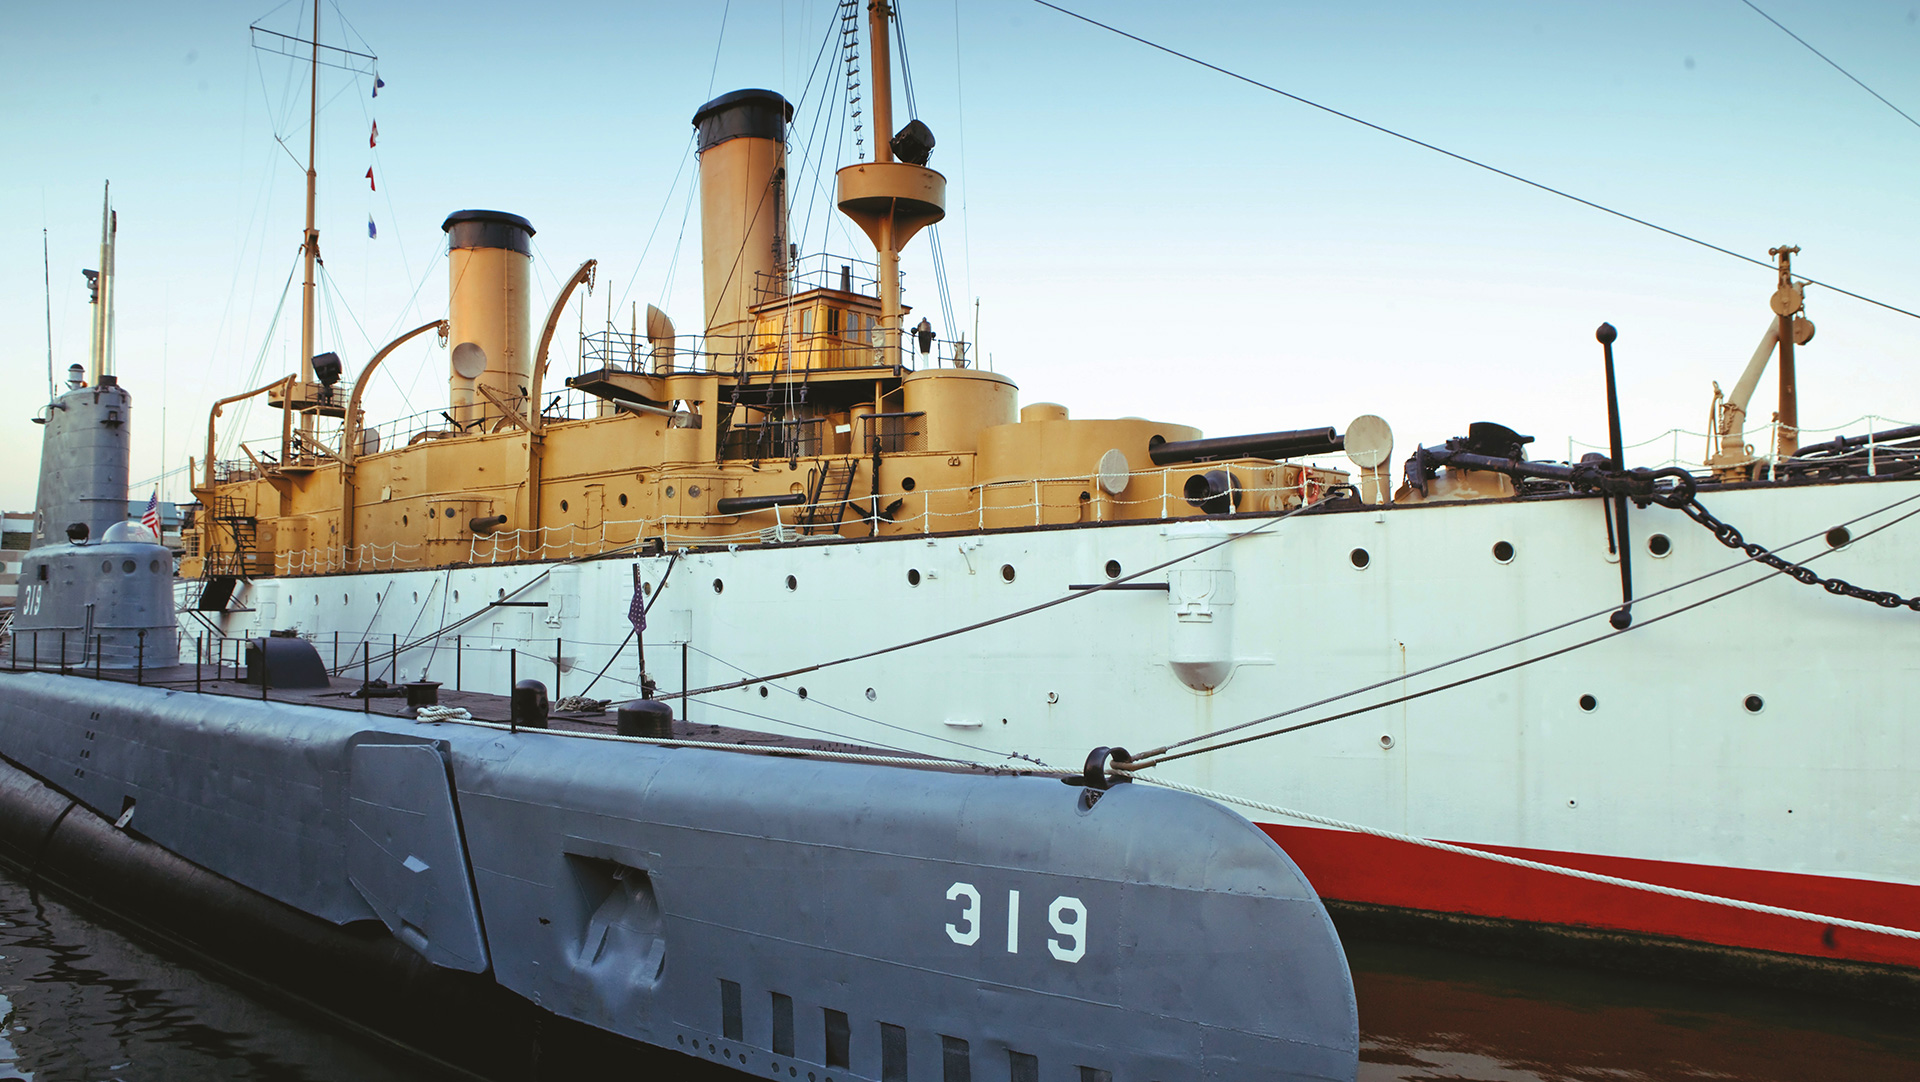 Olympia, Independence Seaport Museum, Phila